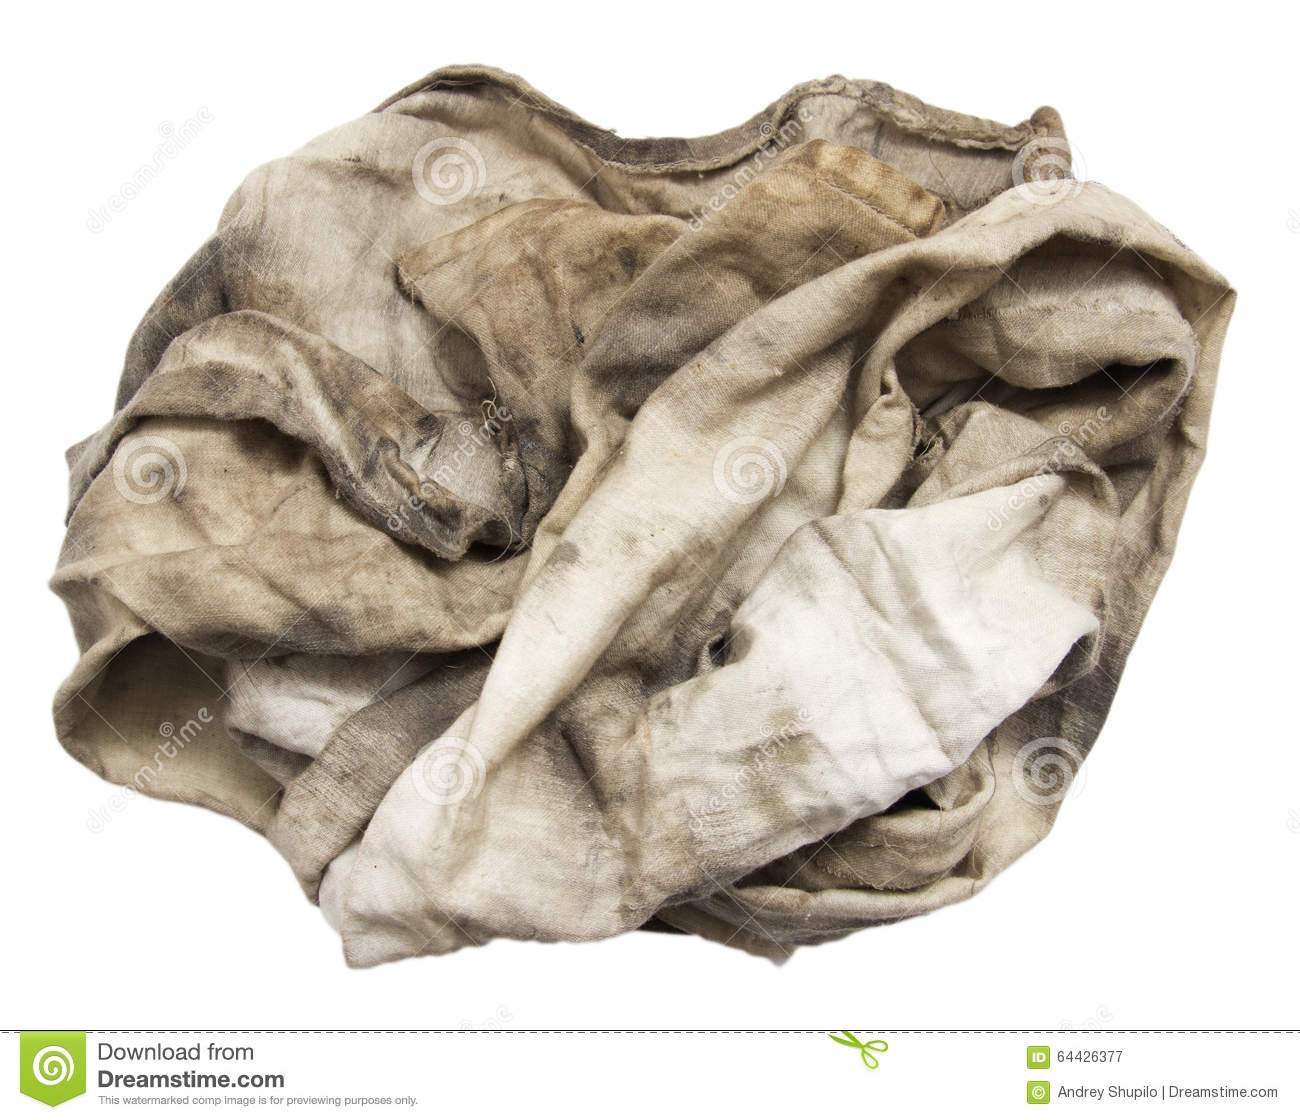 d5793d7318 Dirty rag stock image. Image of hygiene, clean, material - 64426377